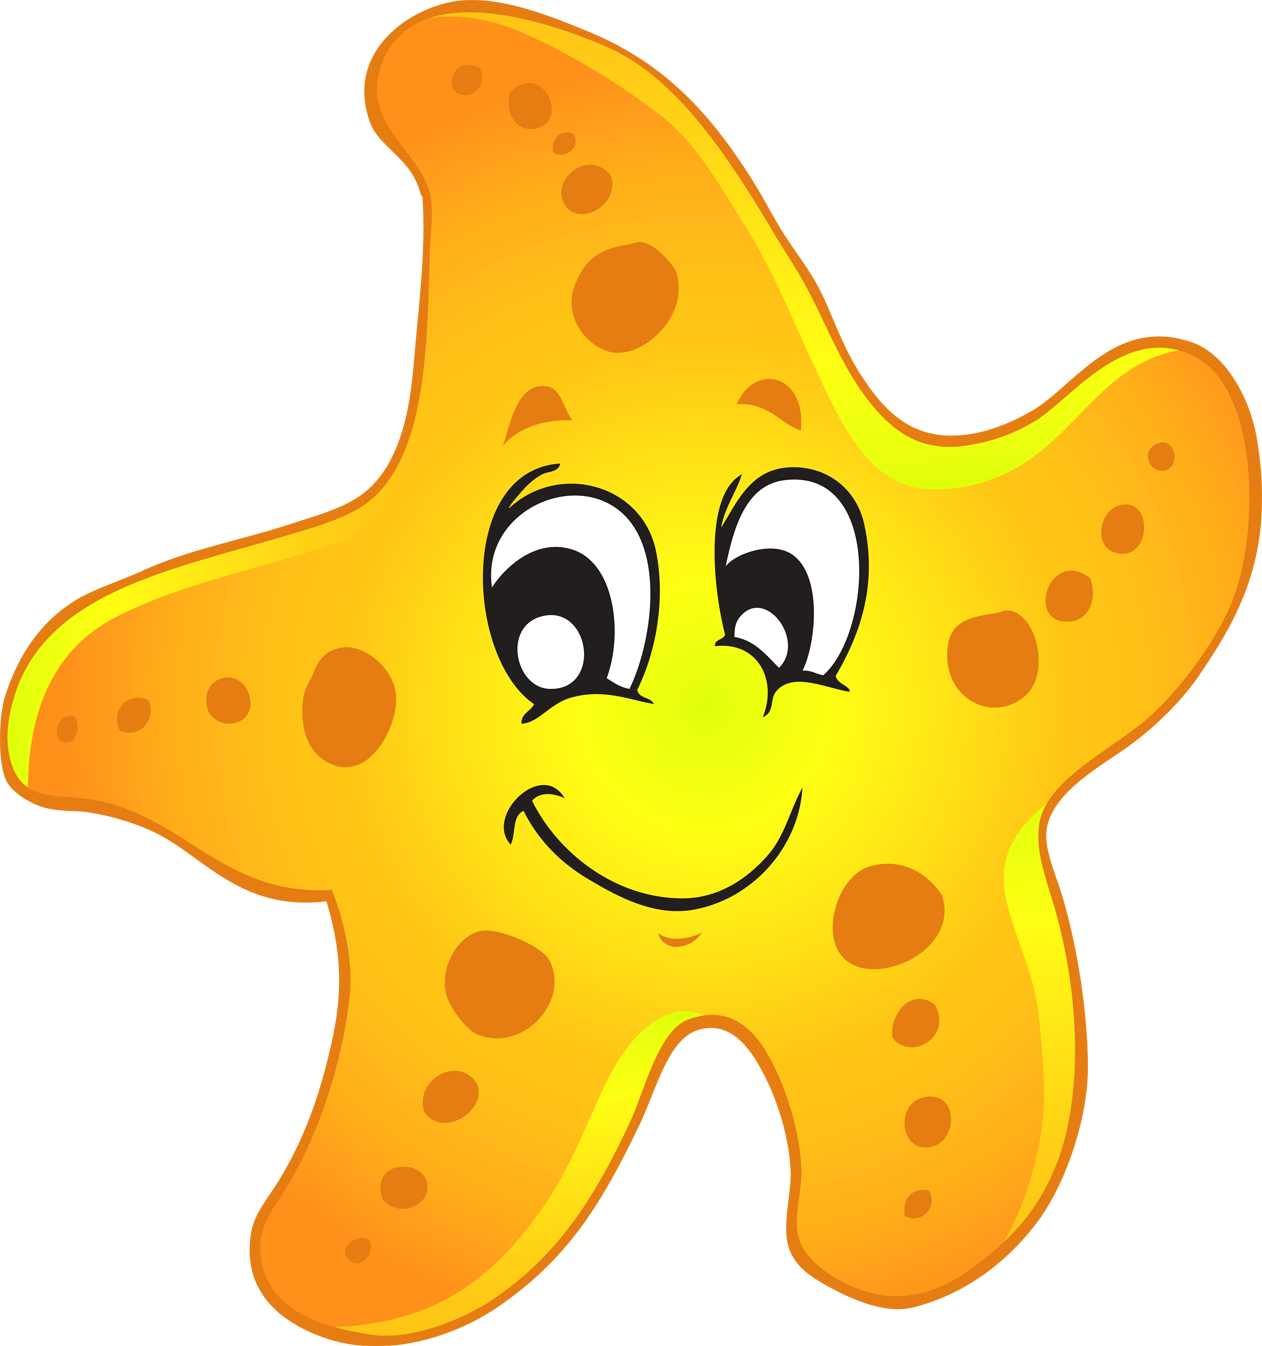 Drawing starfish baby. Collection of free babying